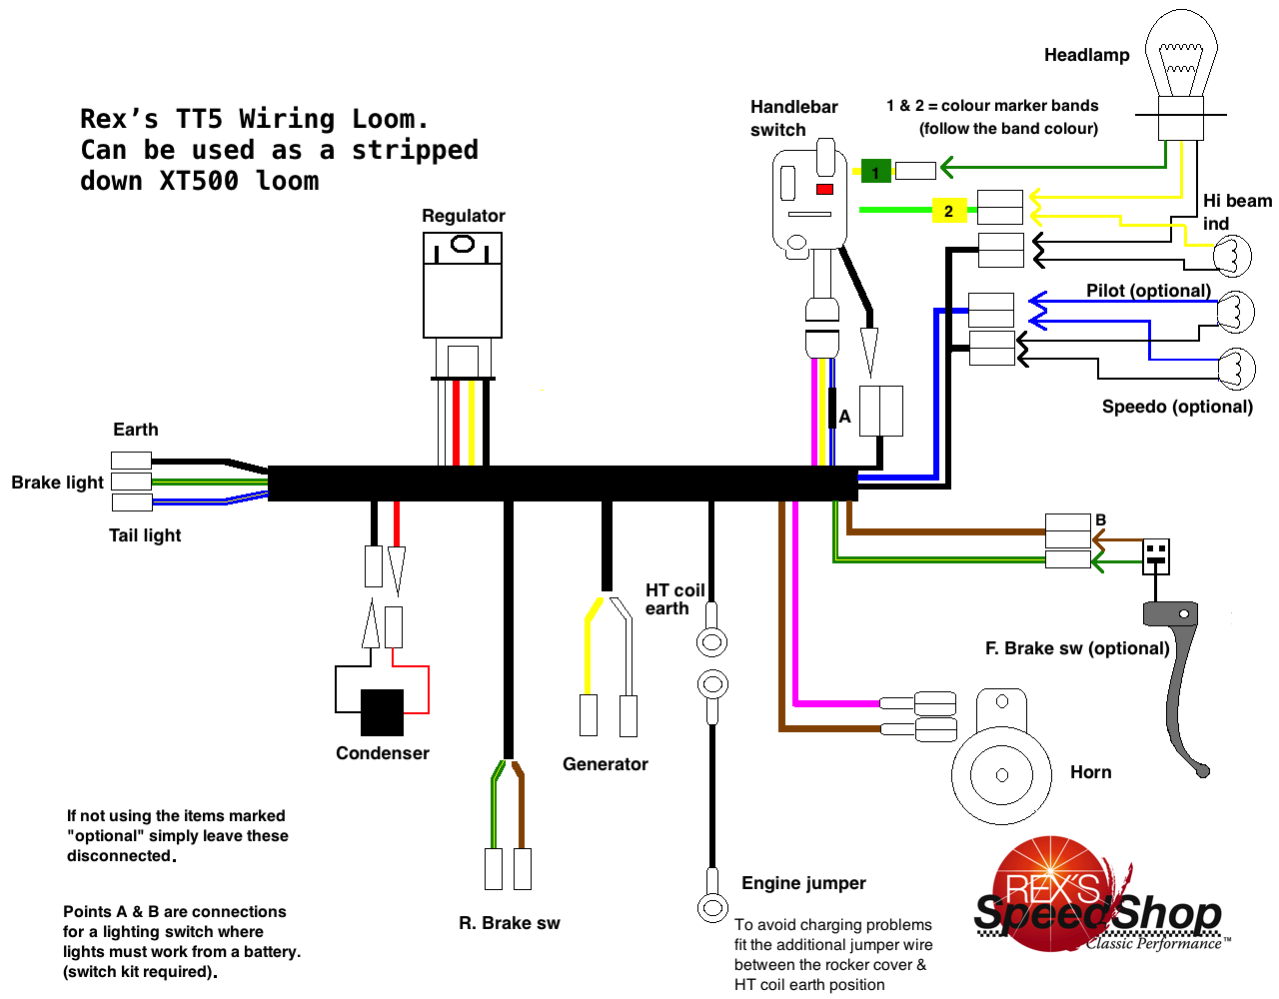 Tt500 12 Volt Wiring Loom Tt5 Rexs Speed Shop Motorcycle Looms